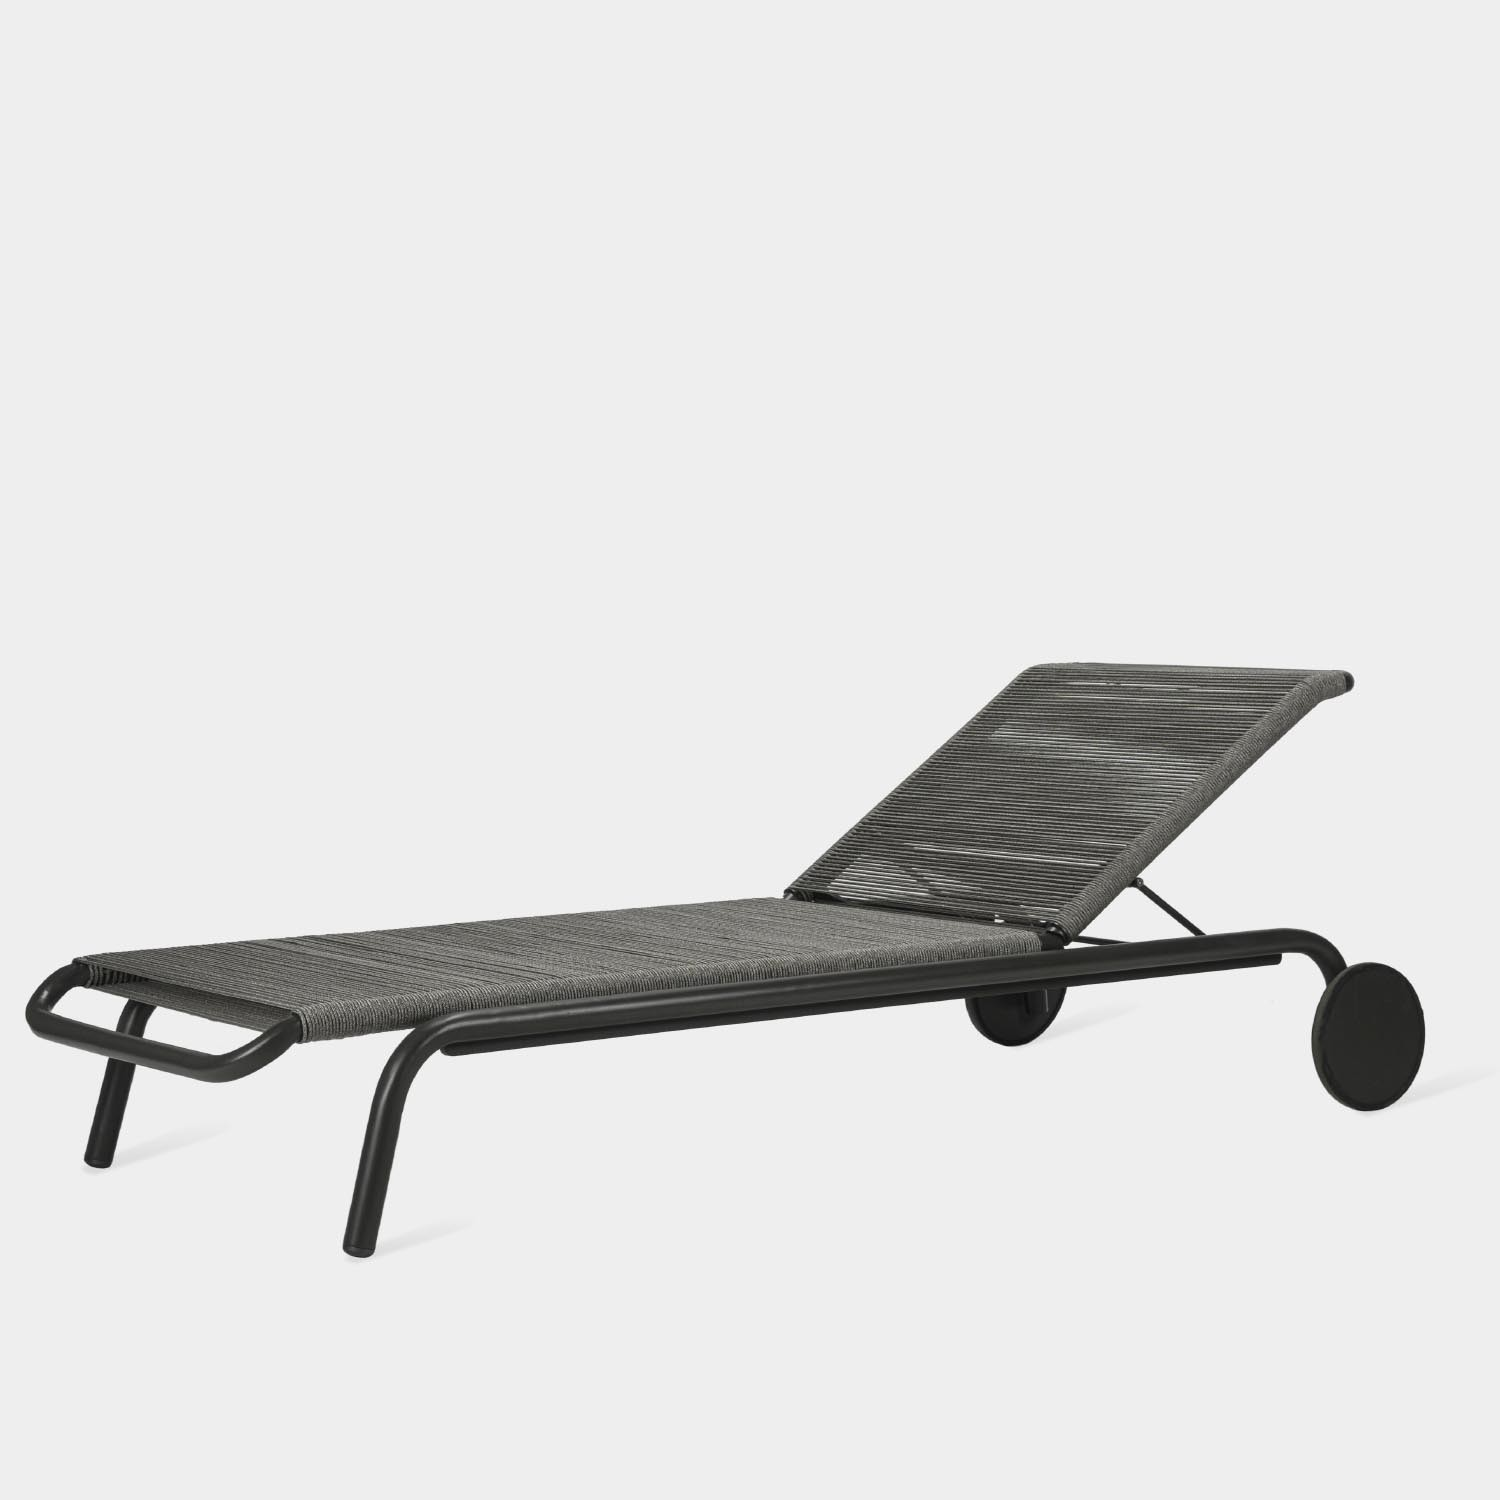 Kodo Sunlounger, No cushion